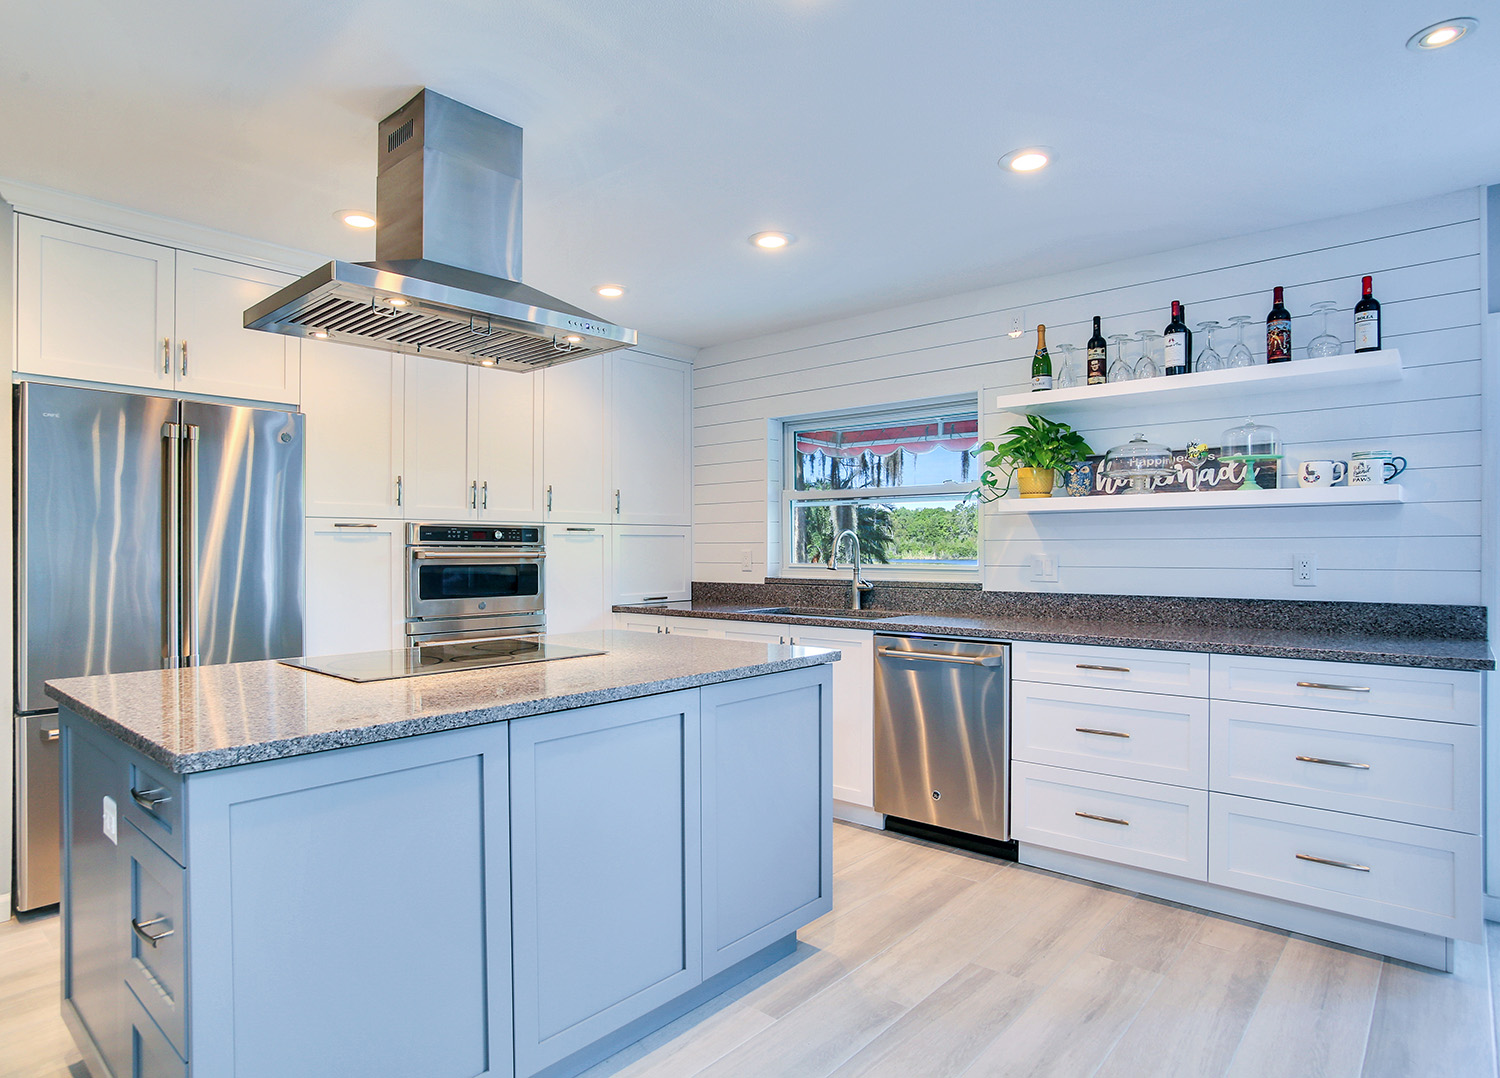 South Tampa Home Remodeling & Renovation Improvements ...